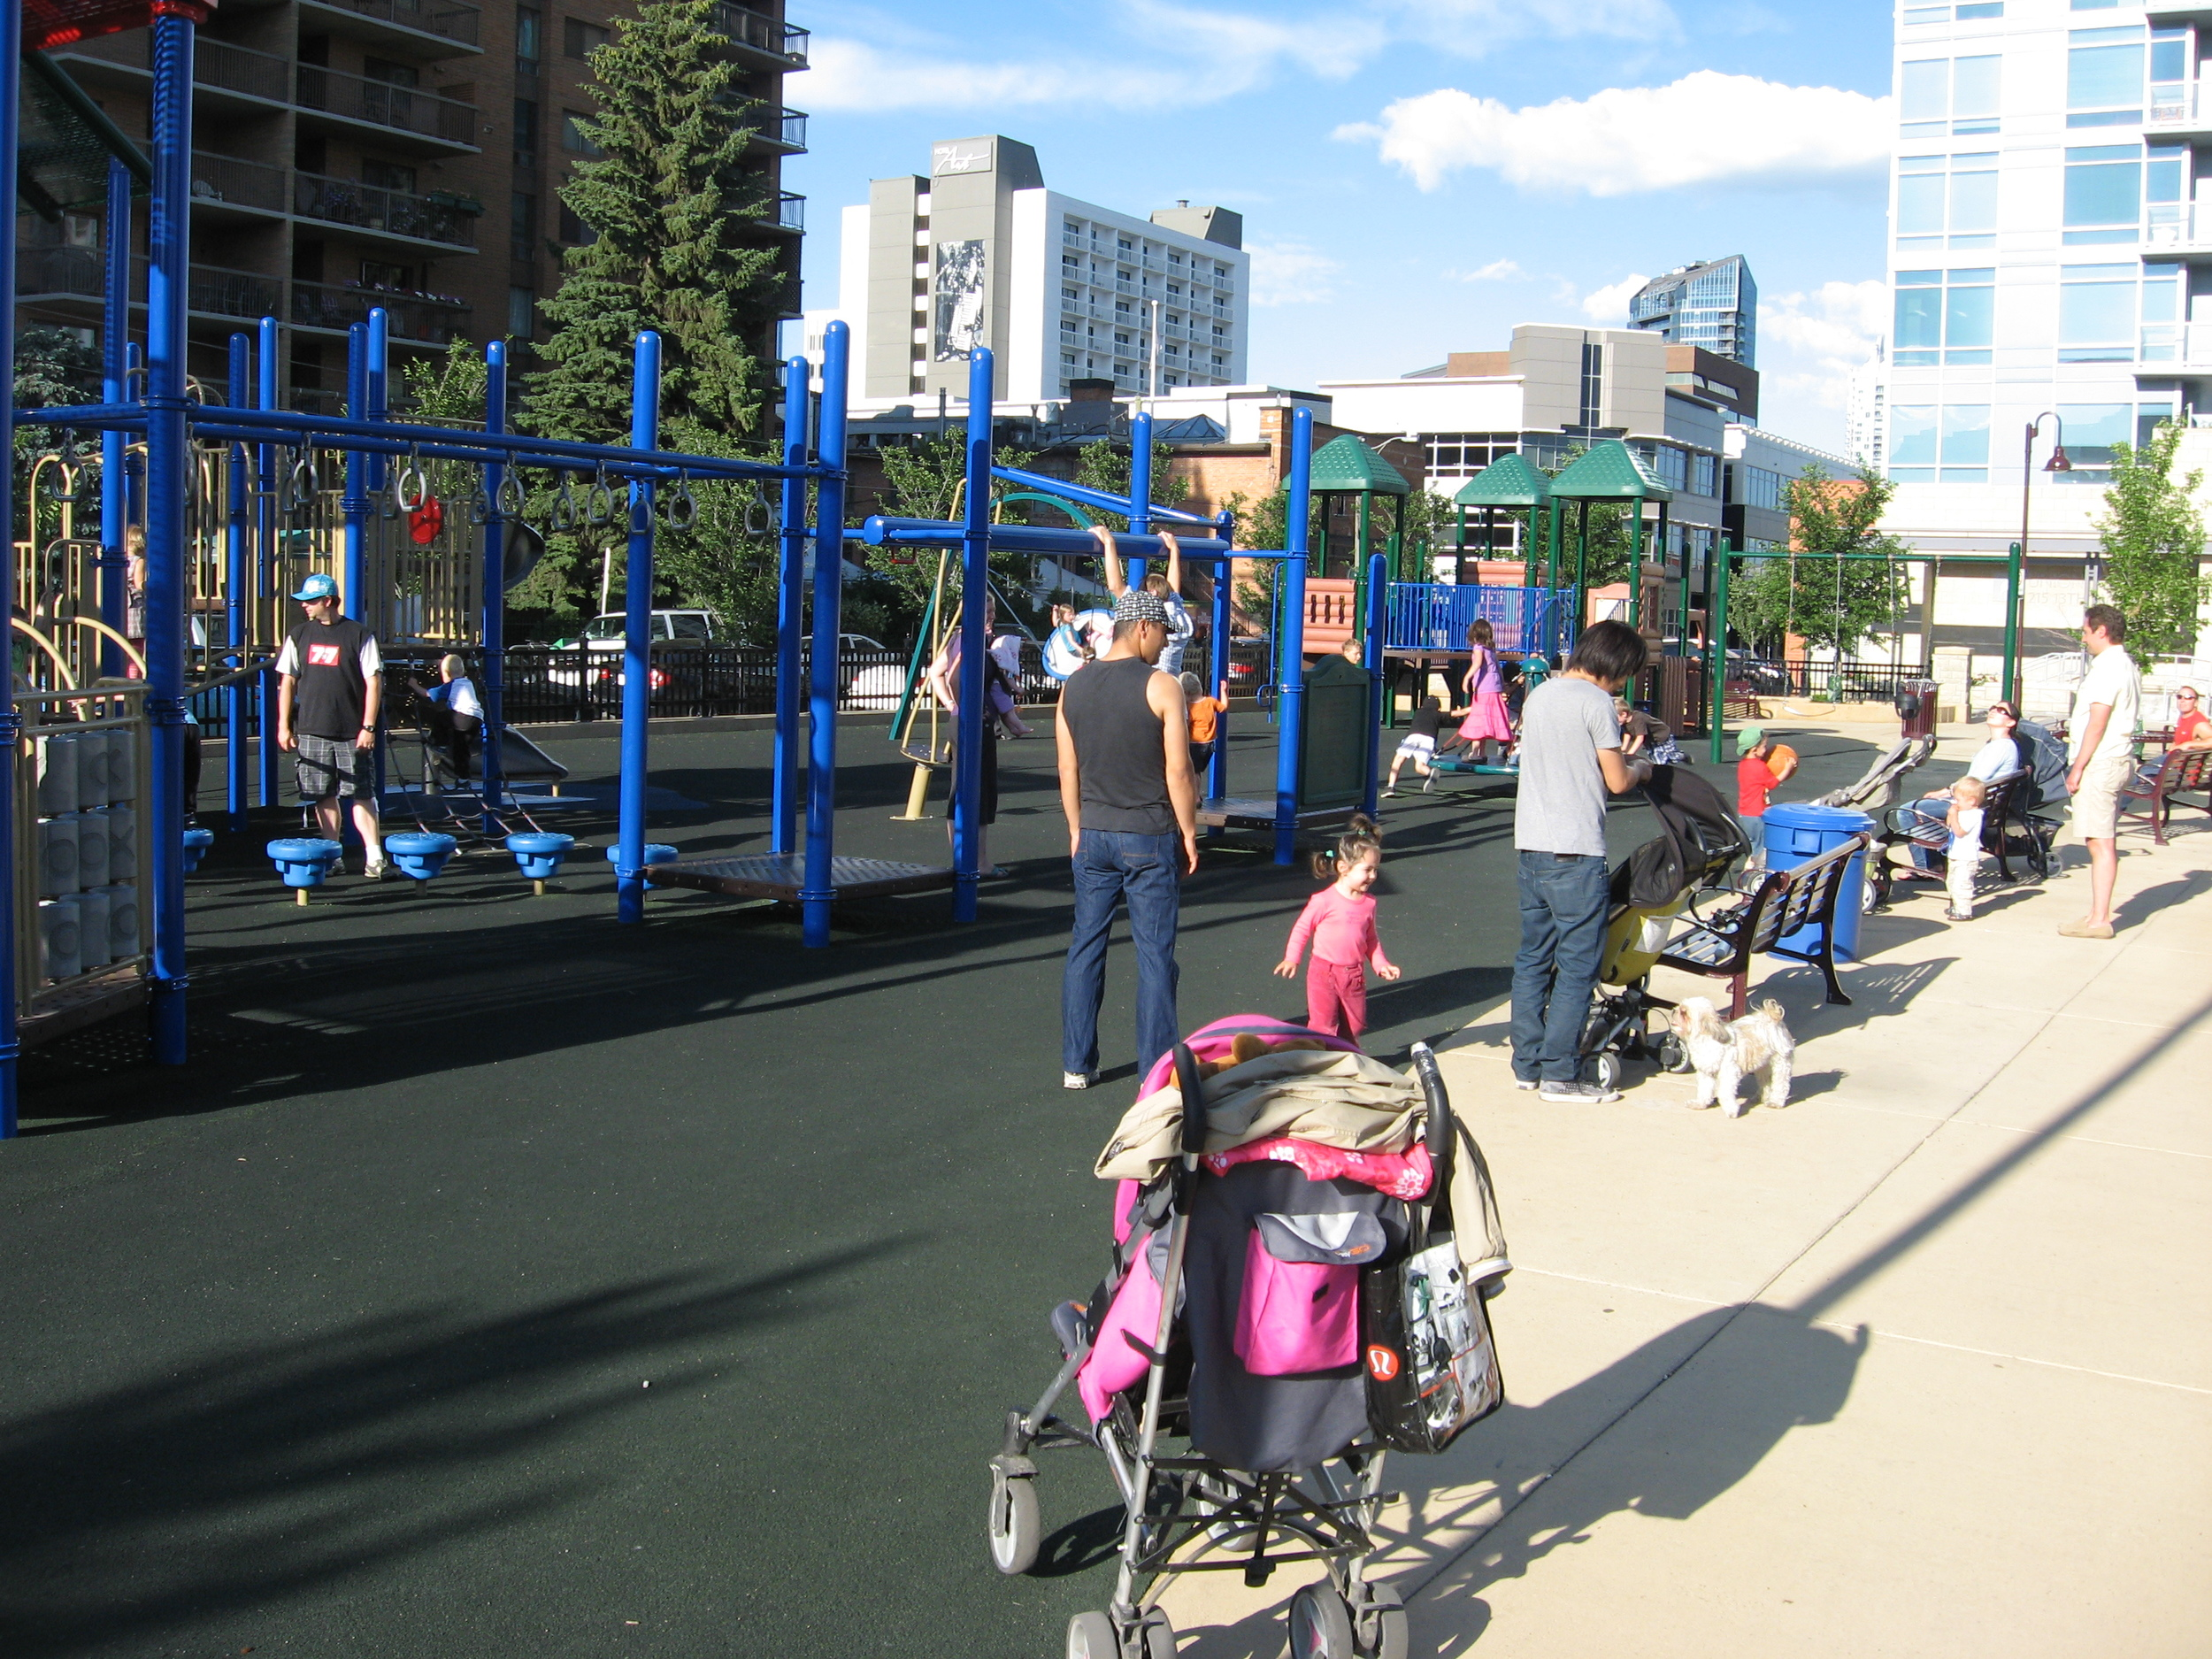 Calgary's Beltline community is one of Canada's most dense communities. It boast this very popular playground in Haultain Park.  Downtown Calgary is very family friendly.